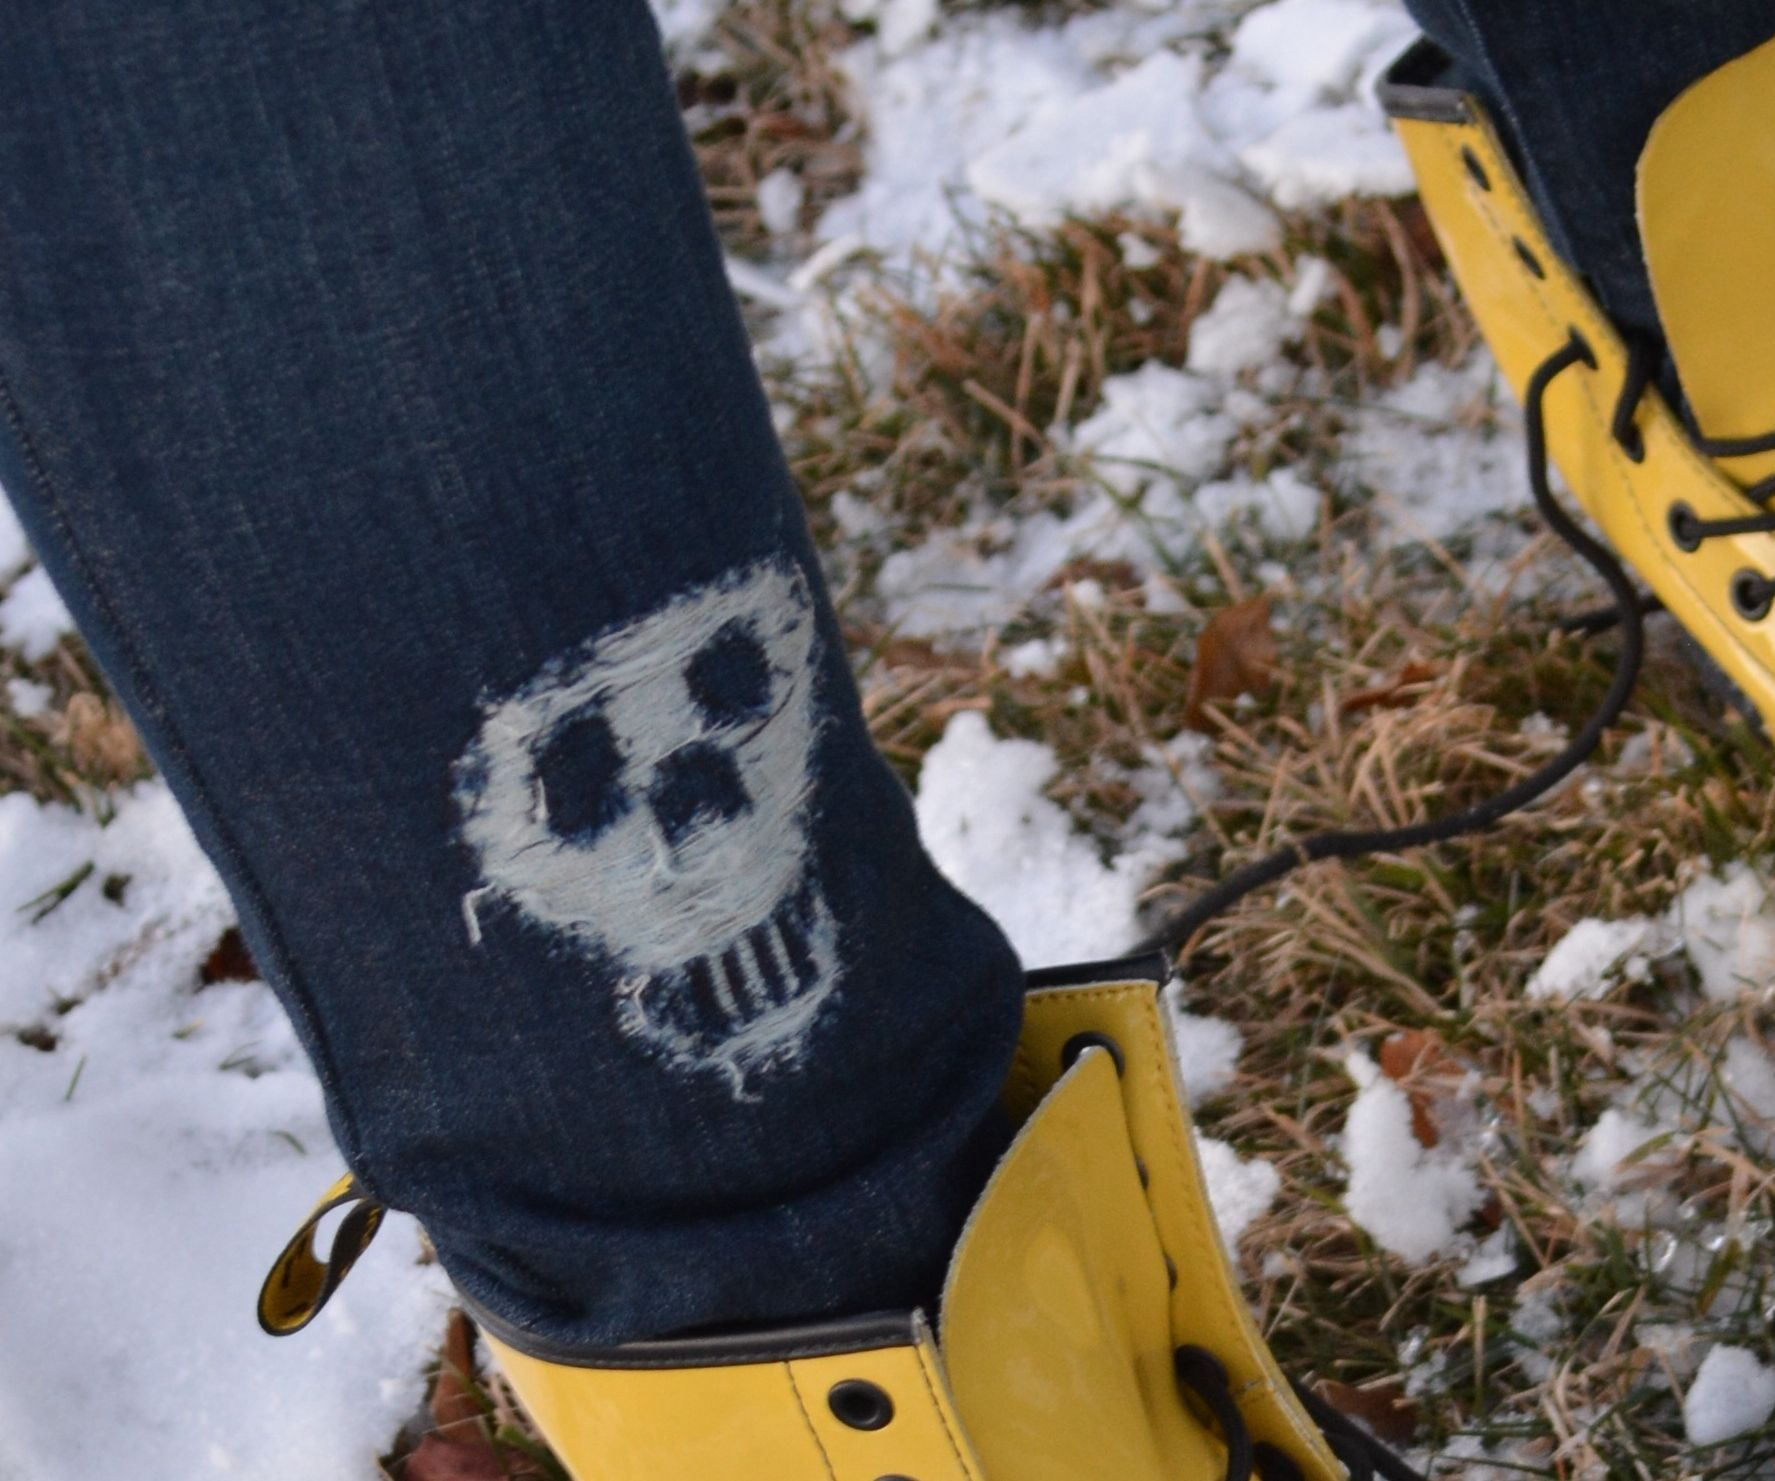 SHRED A SKULL INTO YOUR JEANS